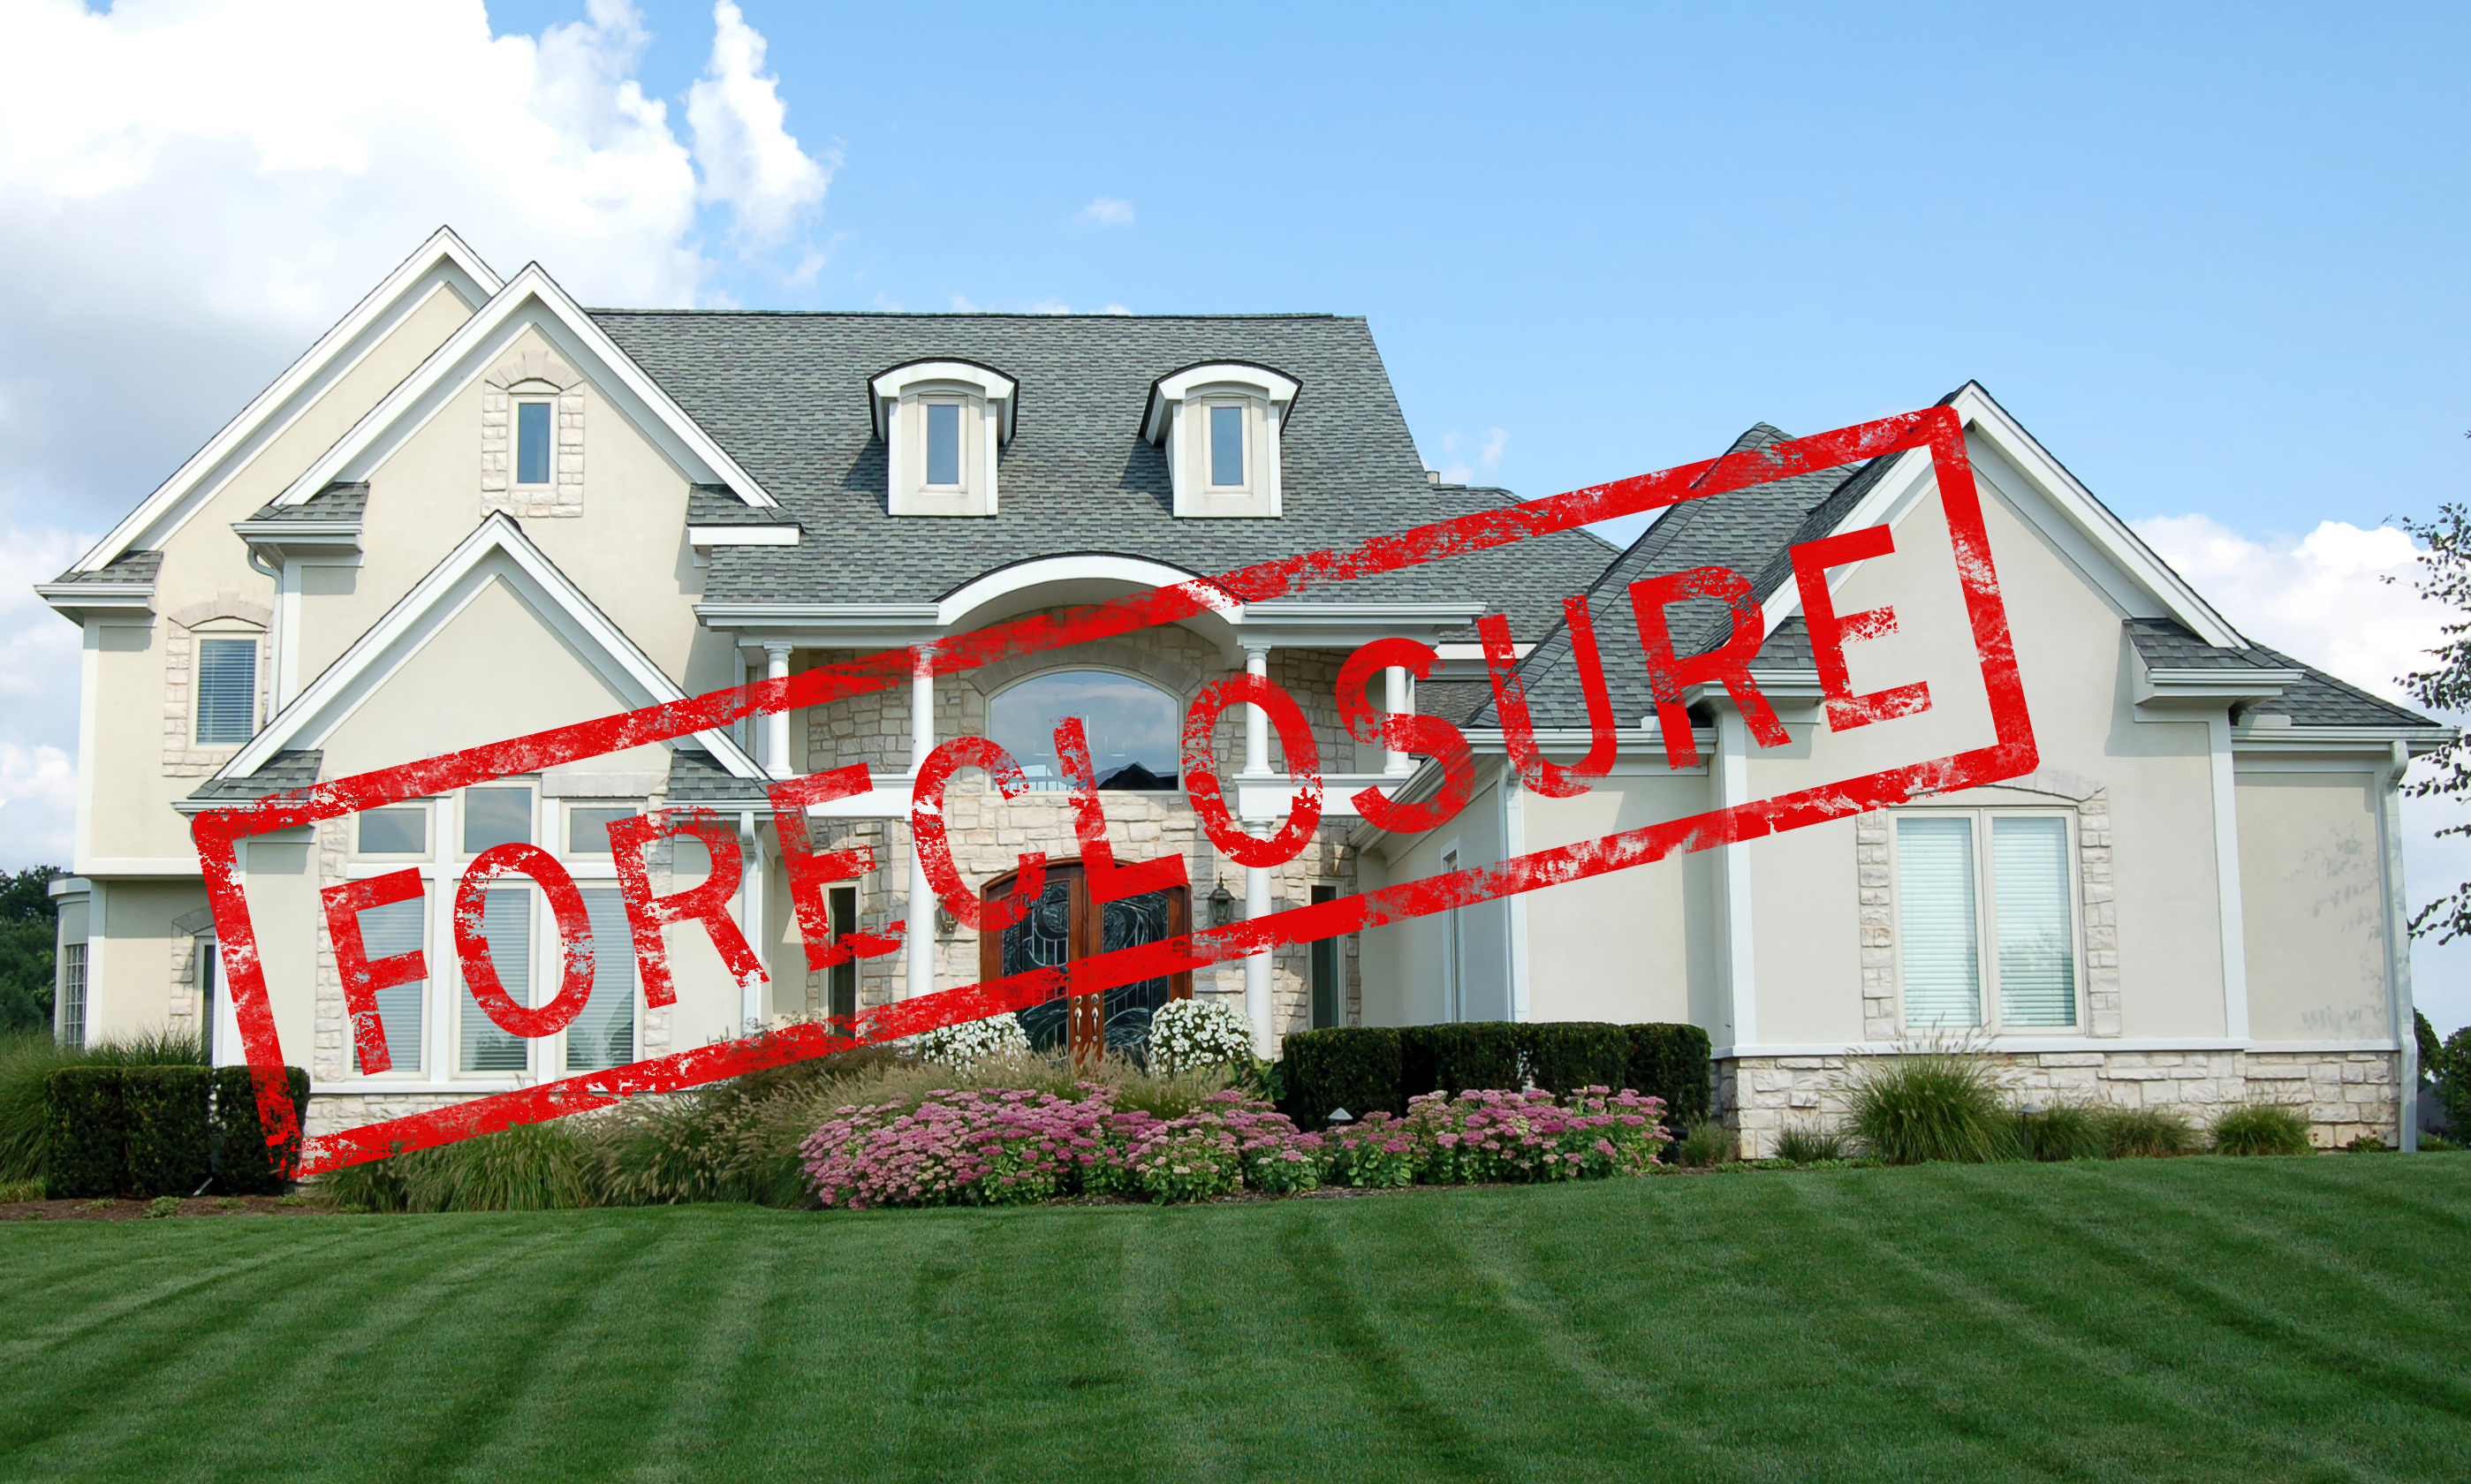 Call Gregory James Company, Inc. when you need valuations pertaining to Polk foreclosures